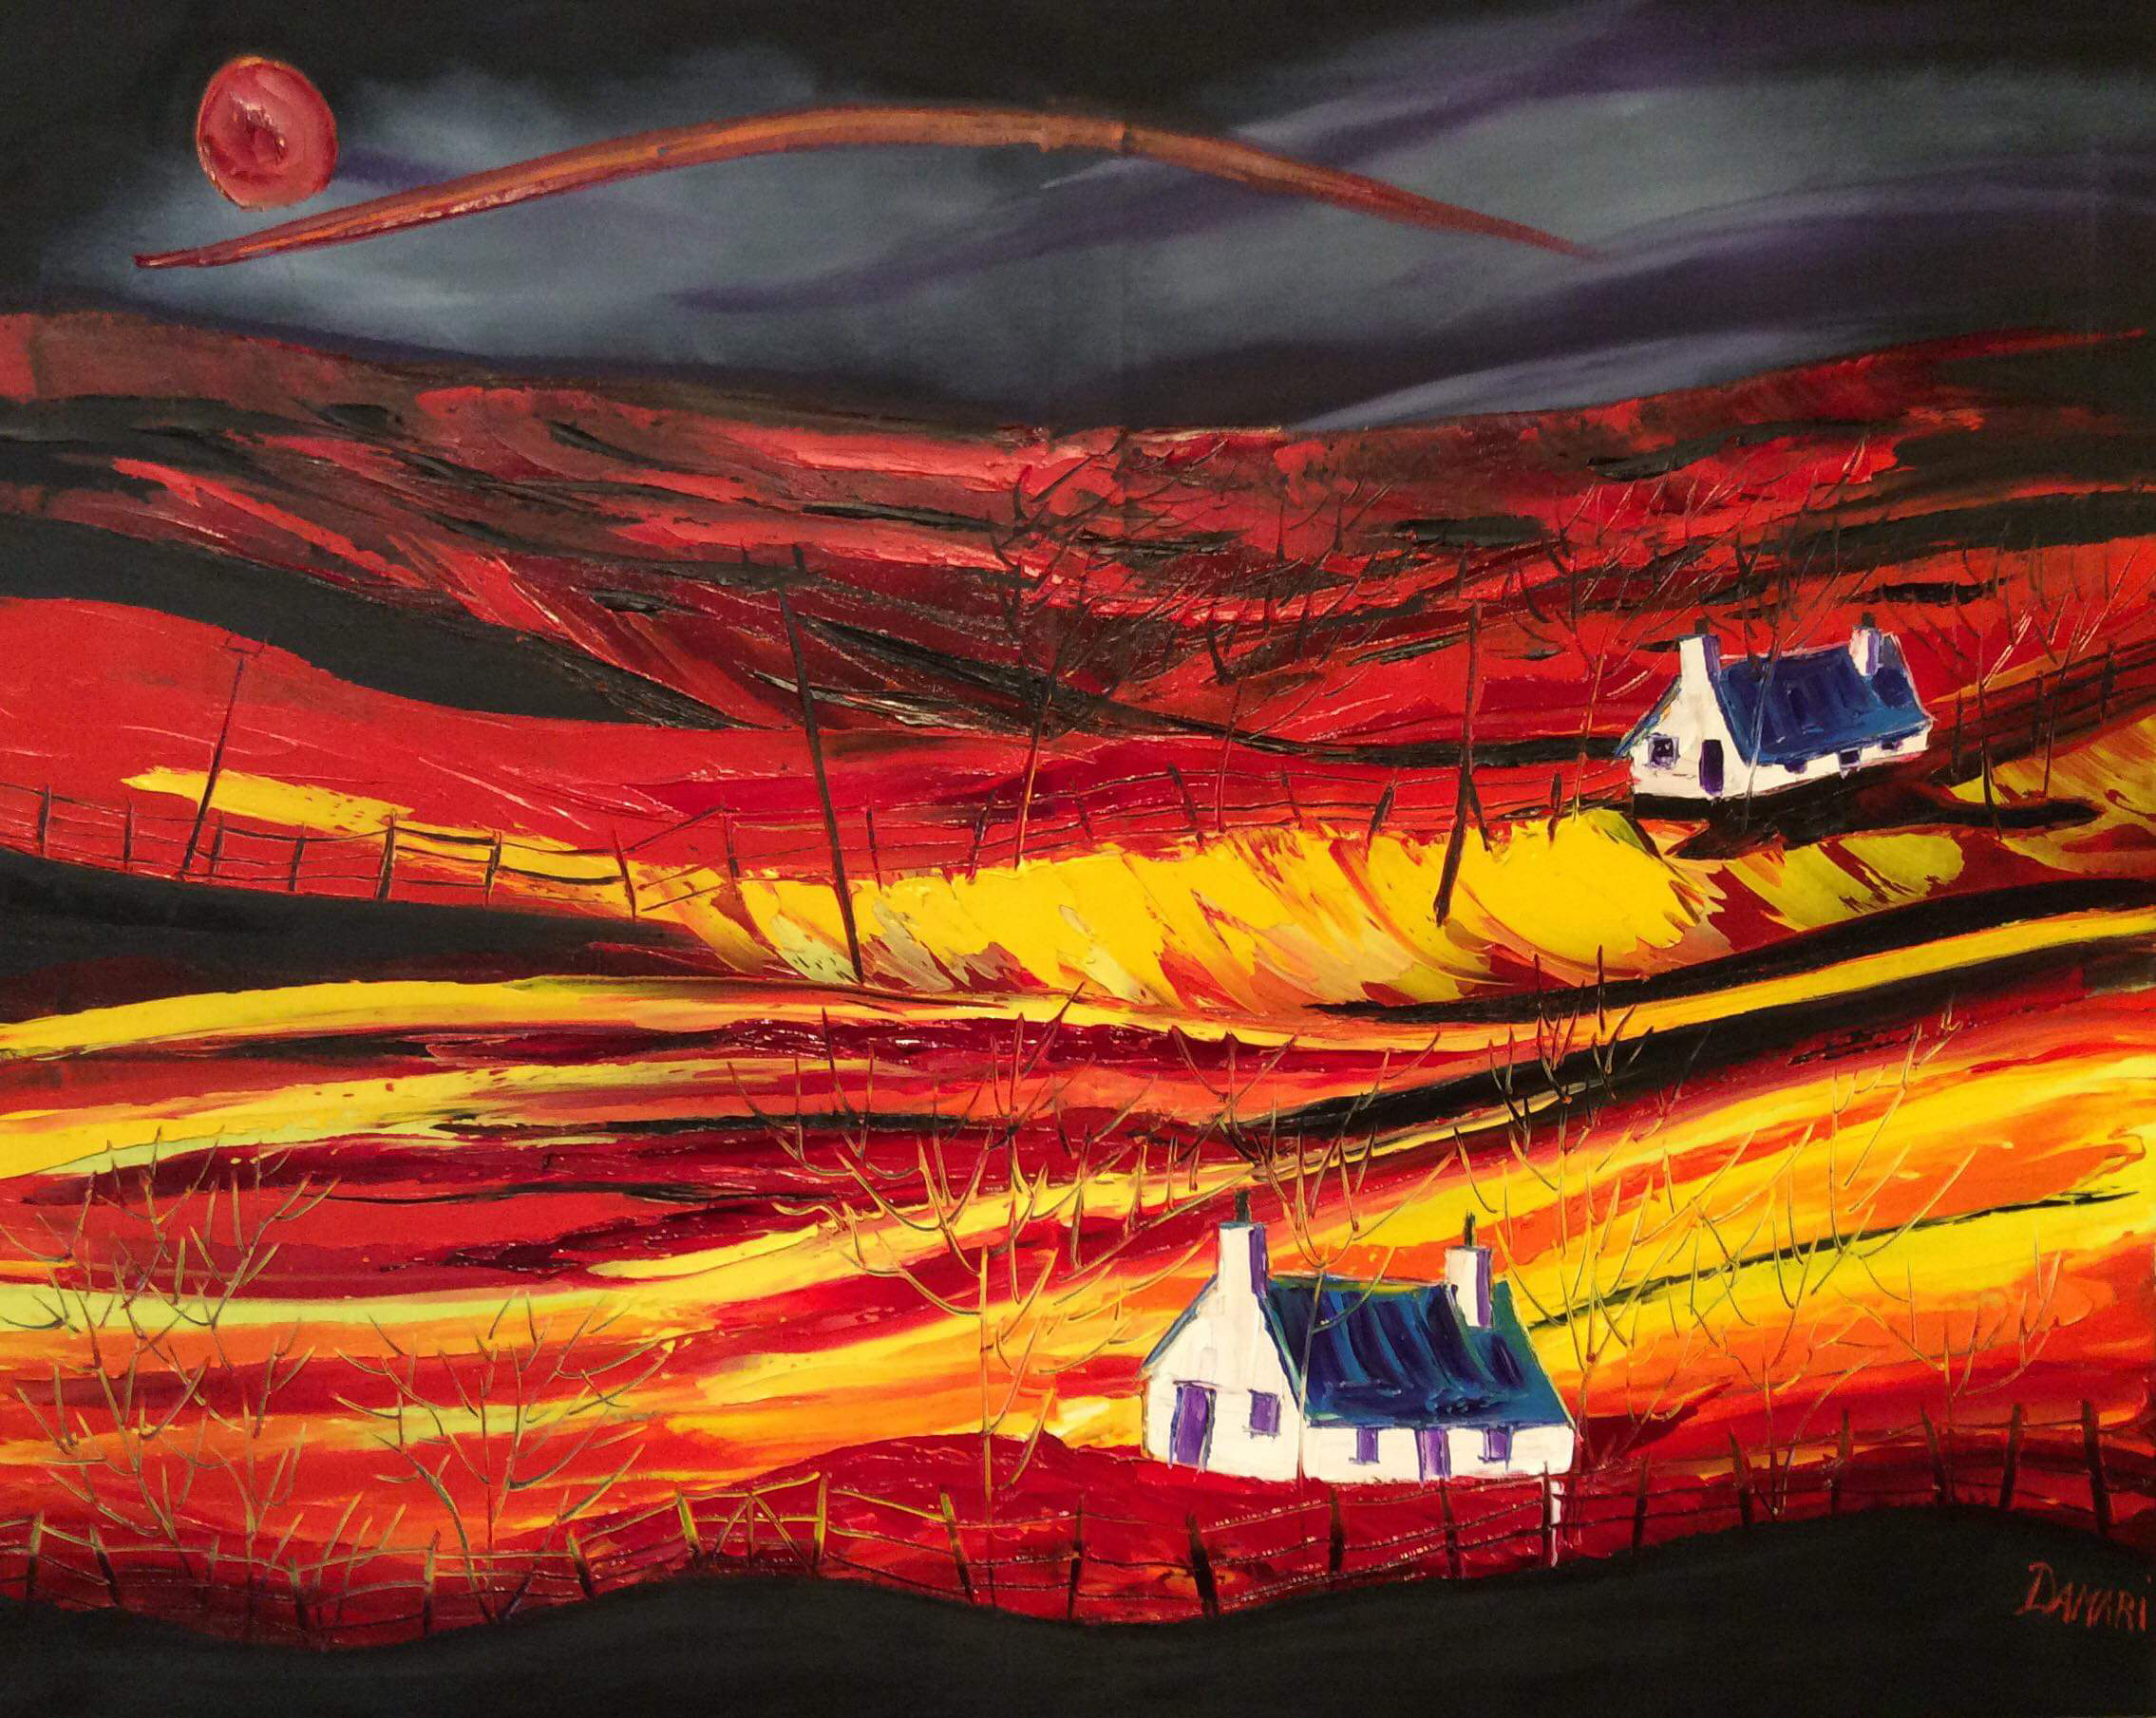 Sunset at the Crofts Argyll, oil on canvas by John Damari